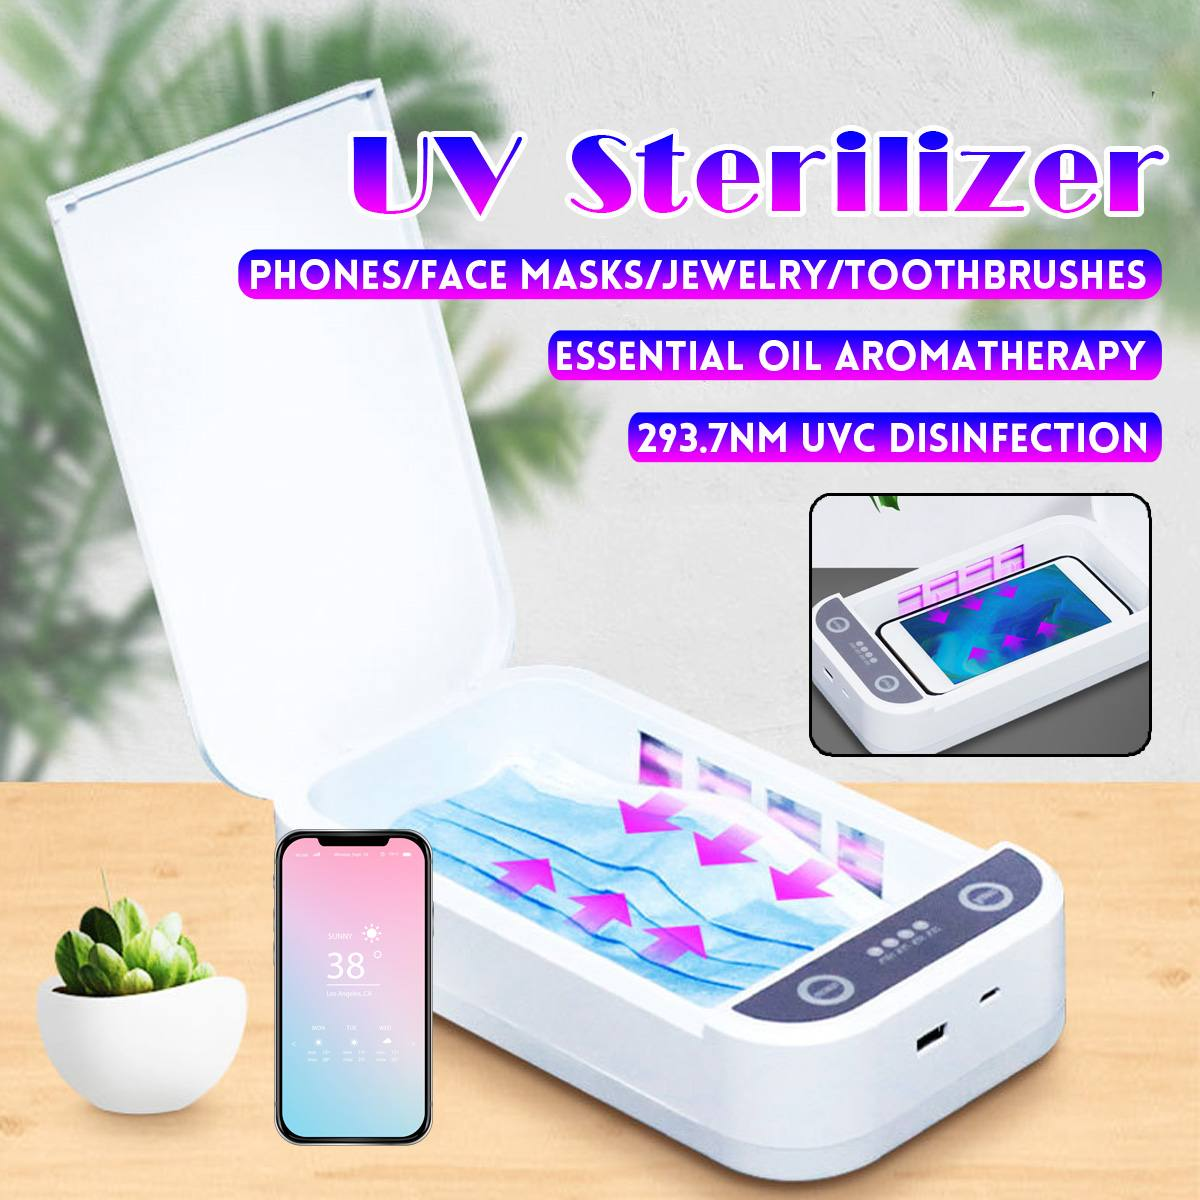 5V UV Phone Sterilizer Box Jewelry Phones Cleaner Personal Sanitizer Disinfection Cabinet With Esterilizador For Mask